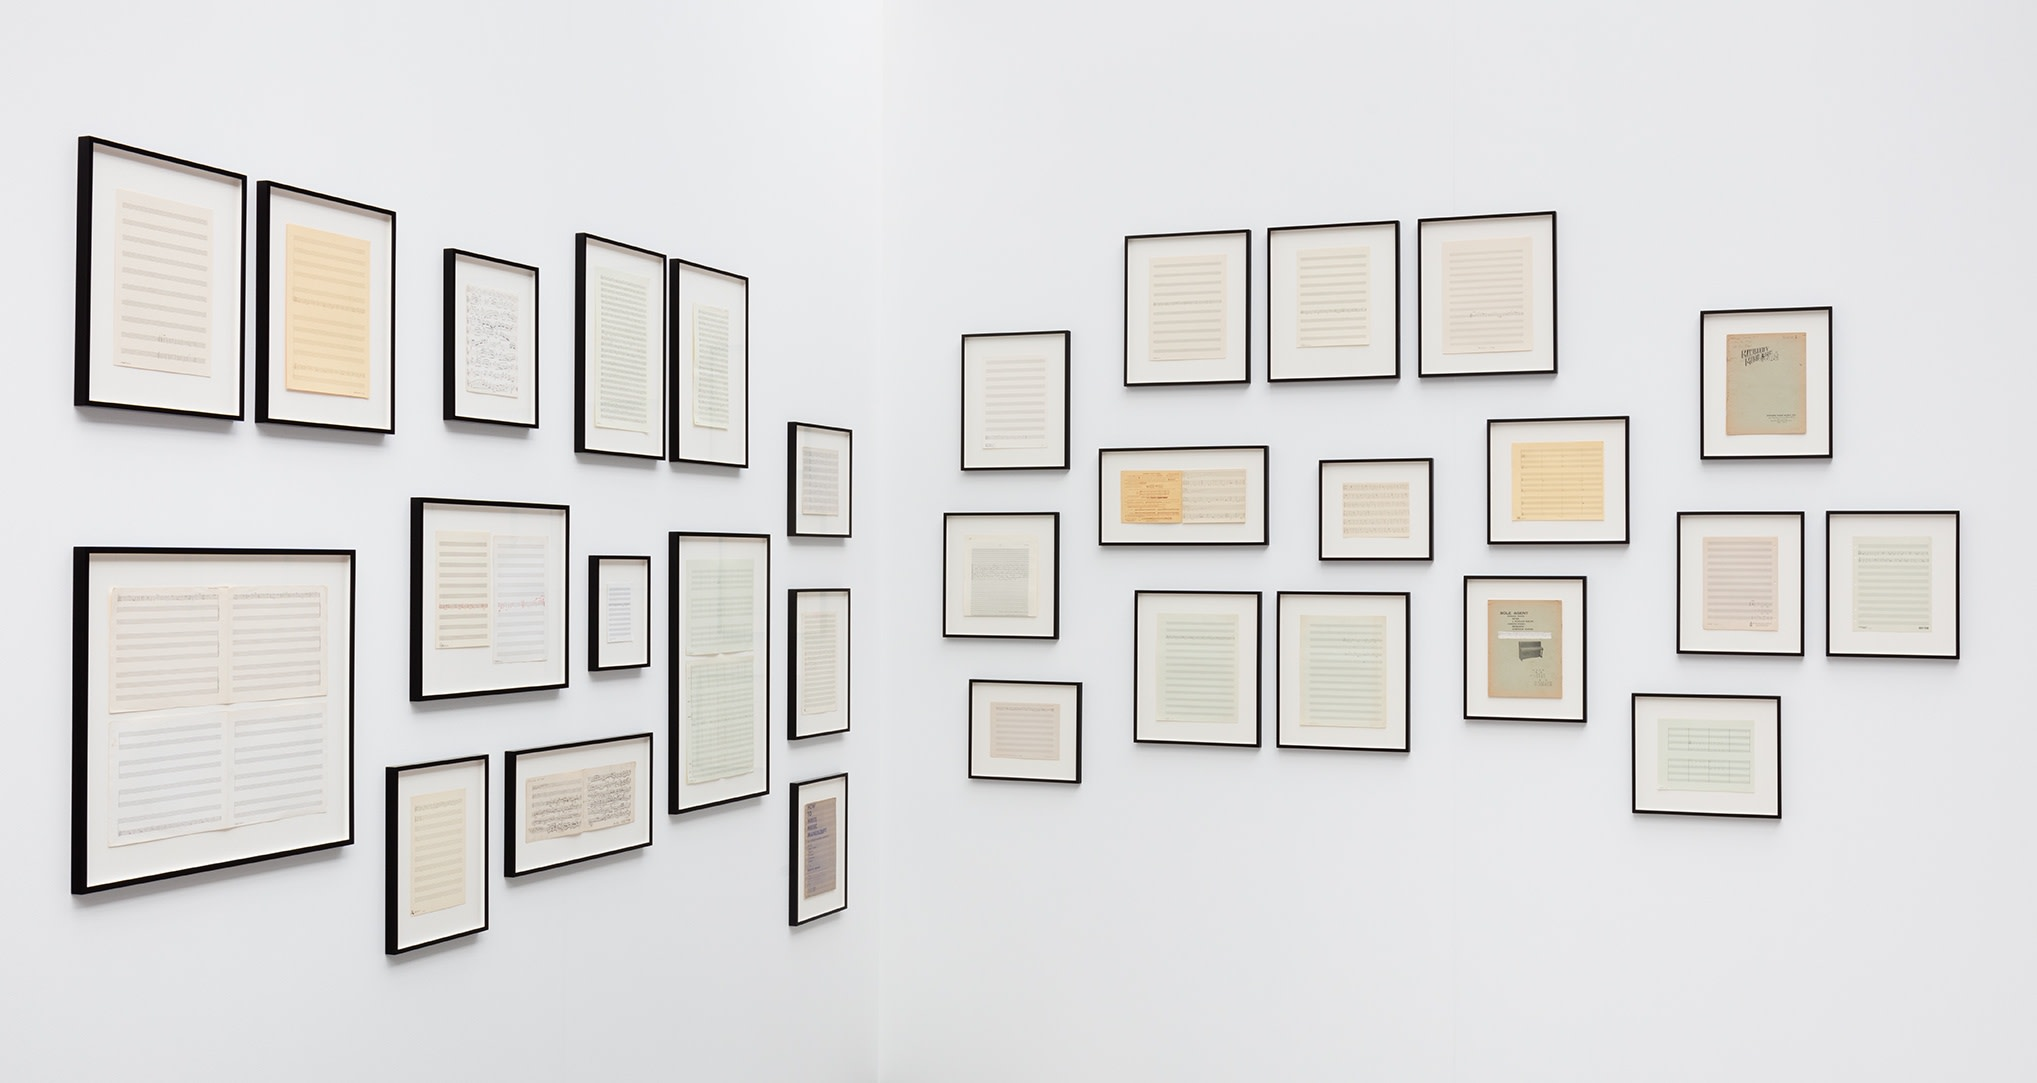 Ari Benjamin Meyers, works from the Atlas of Melodies series, 2015, handwritten scores on paper, dimensions variable. Photo © Andrea Rossetti